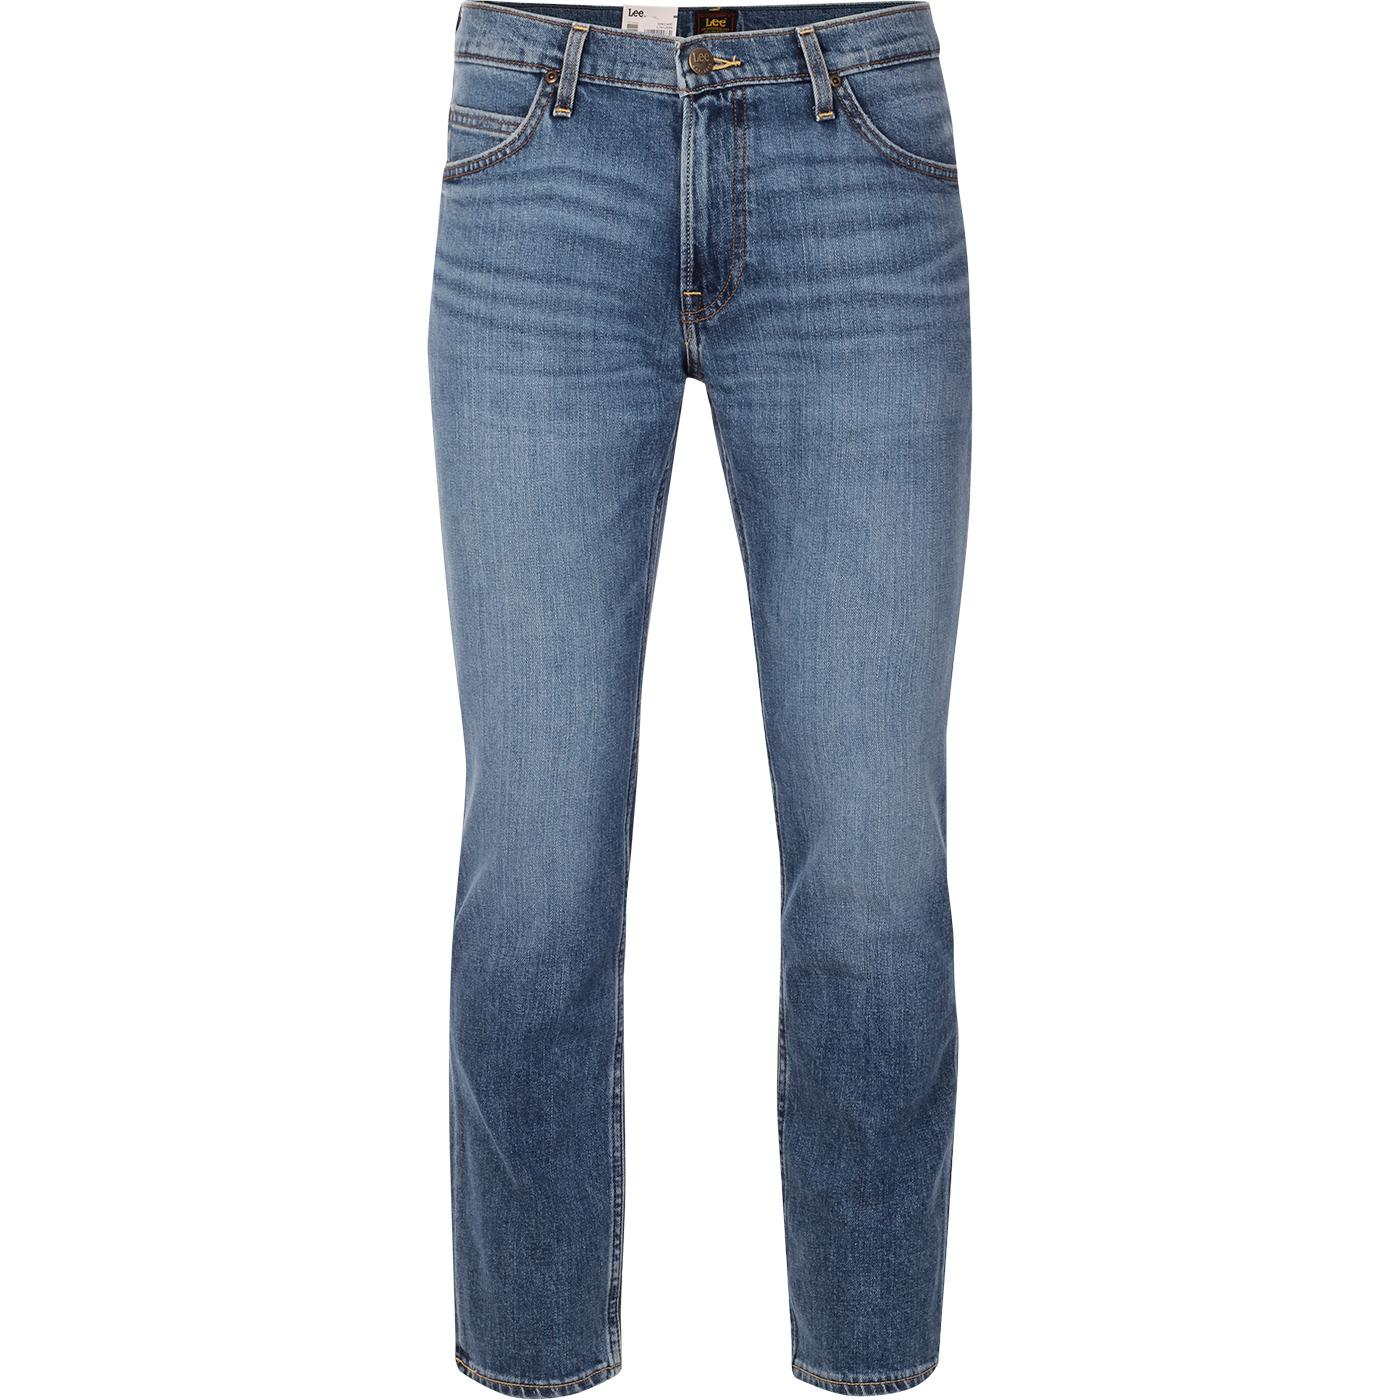 Rider LEE Retro Slim Leg Denim Jeans (Westlake)